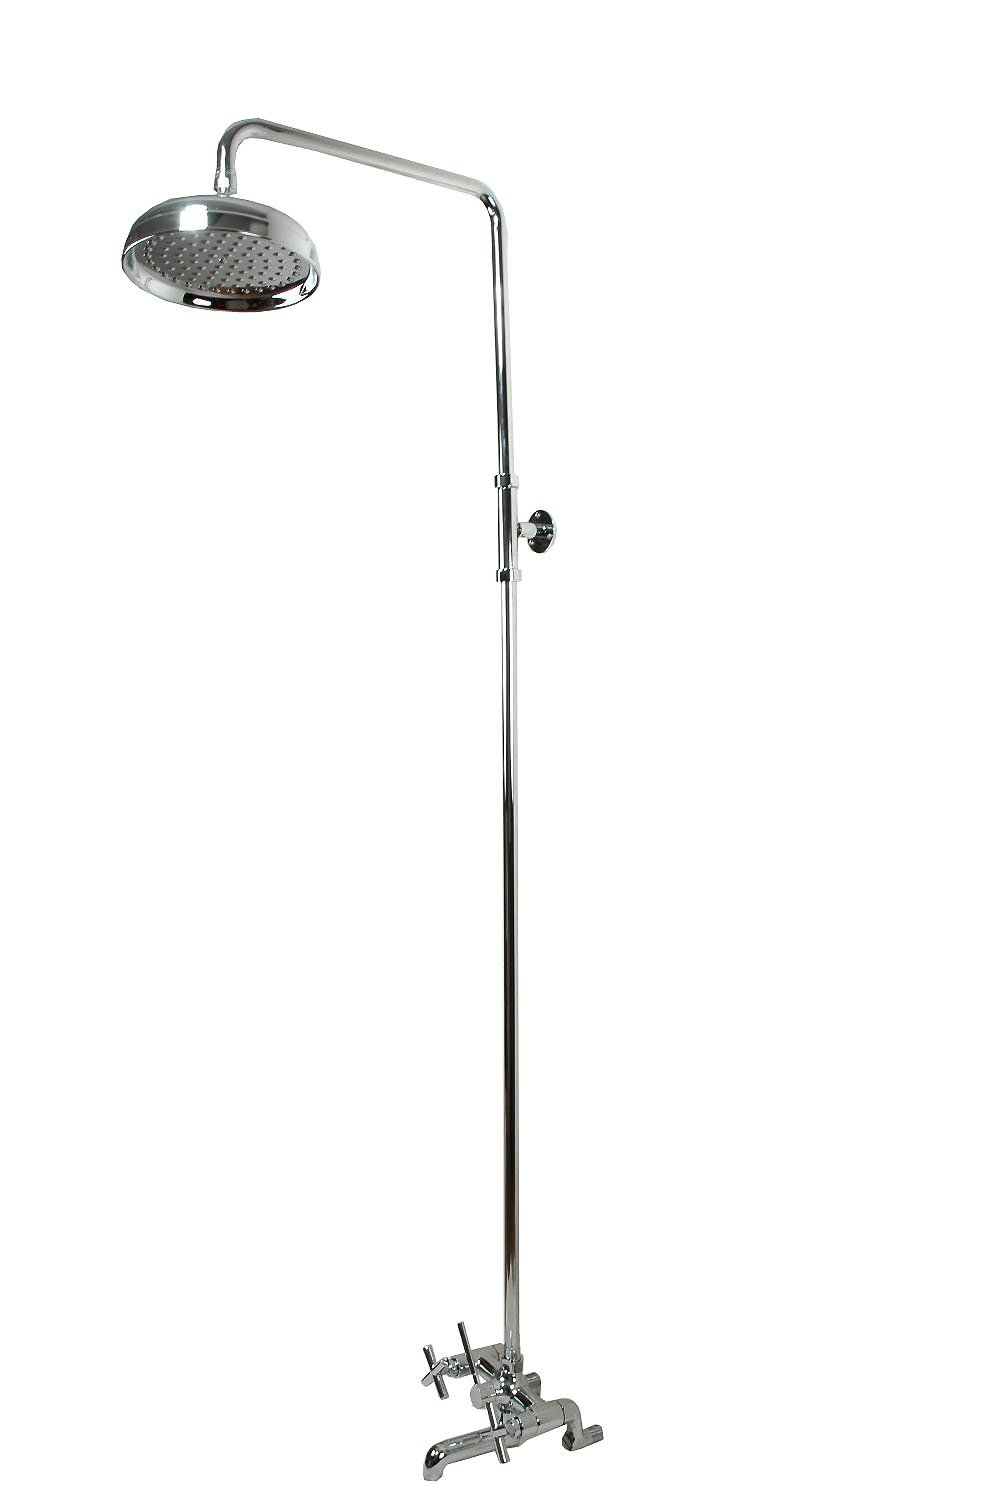 Clawfoot Tub Shower Faucet or Add-on Shower & Bathcock, Brass in Chrome Finish - By Plumb USA 34065